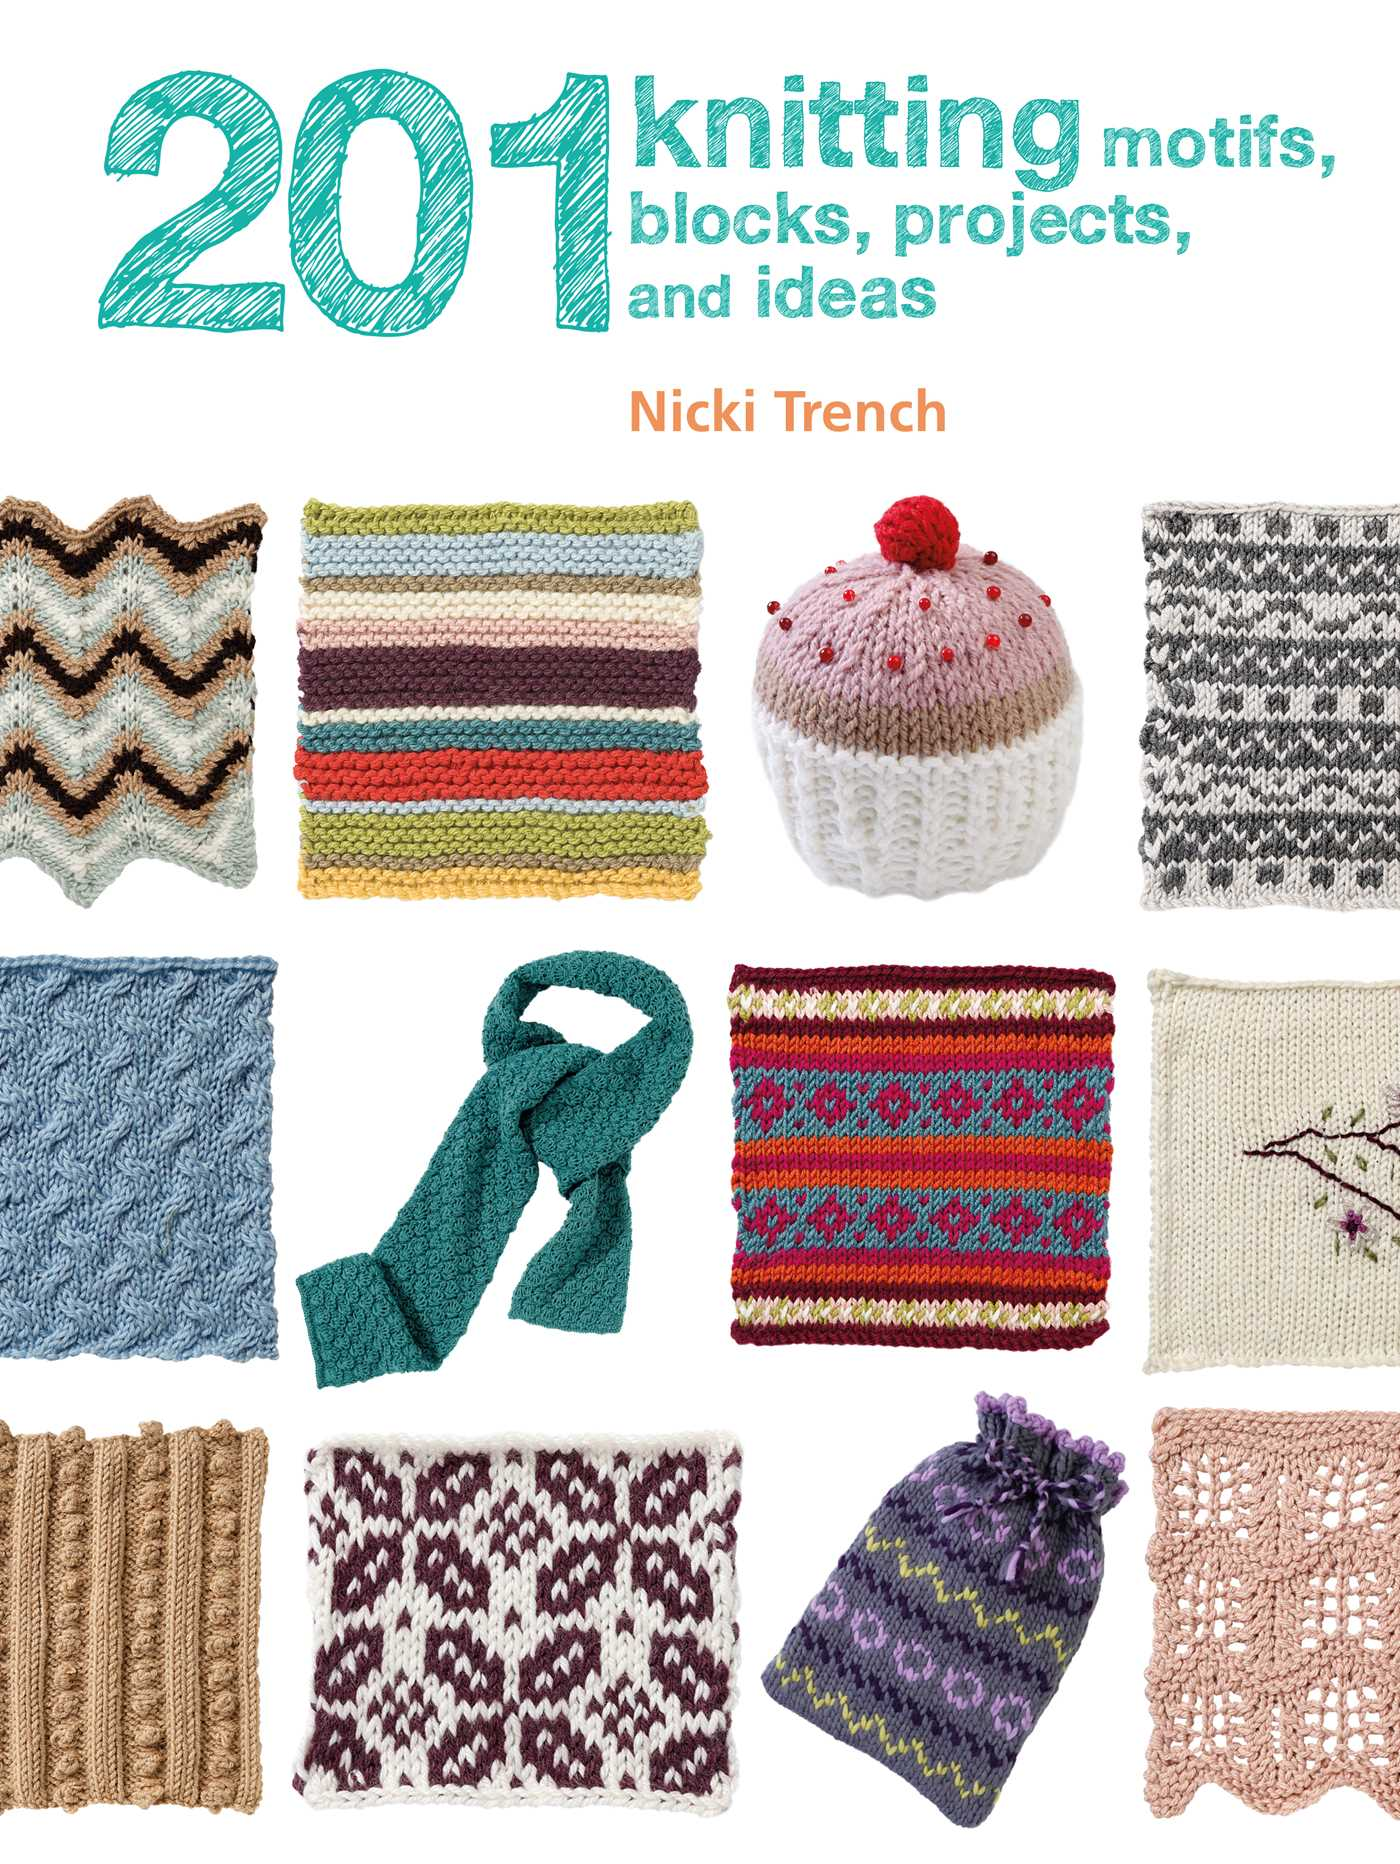 Book Cover Knitting Pattern ~ Free baby knitting patterns book covers charity blanket litlestuff